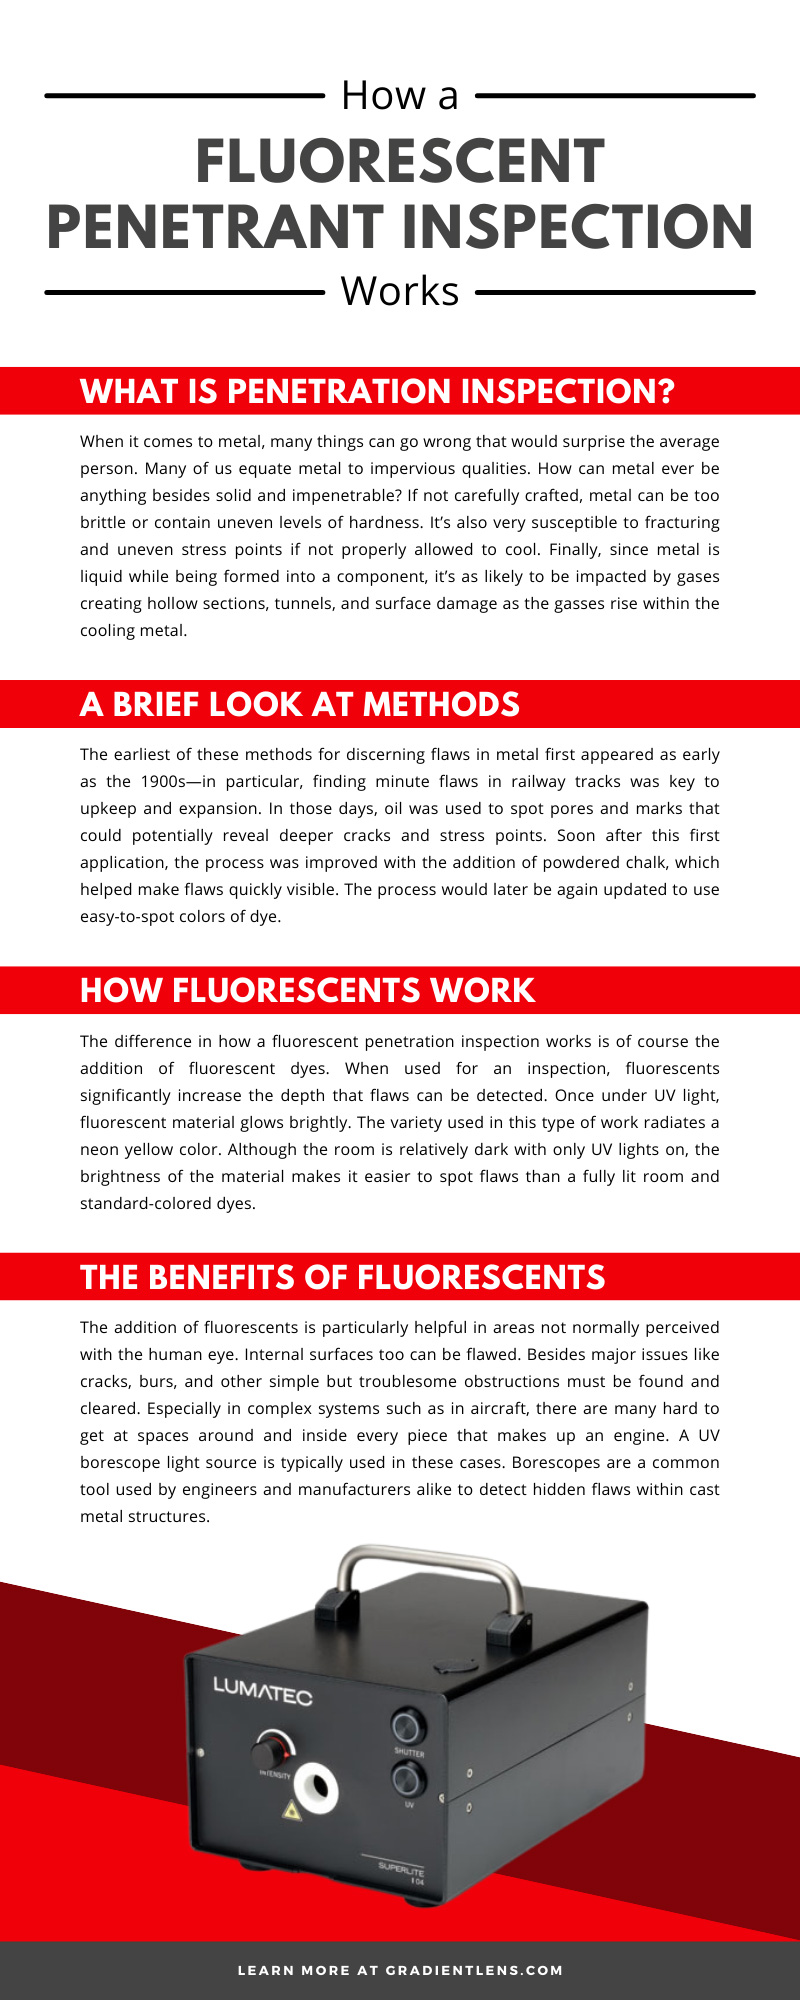 How a Fluorescent Penetrant Inspection Works